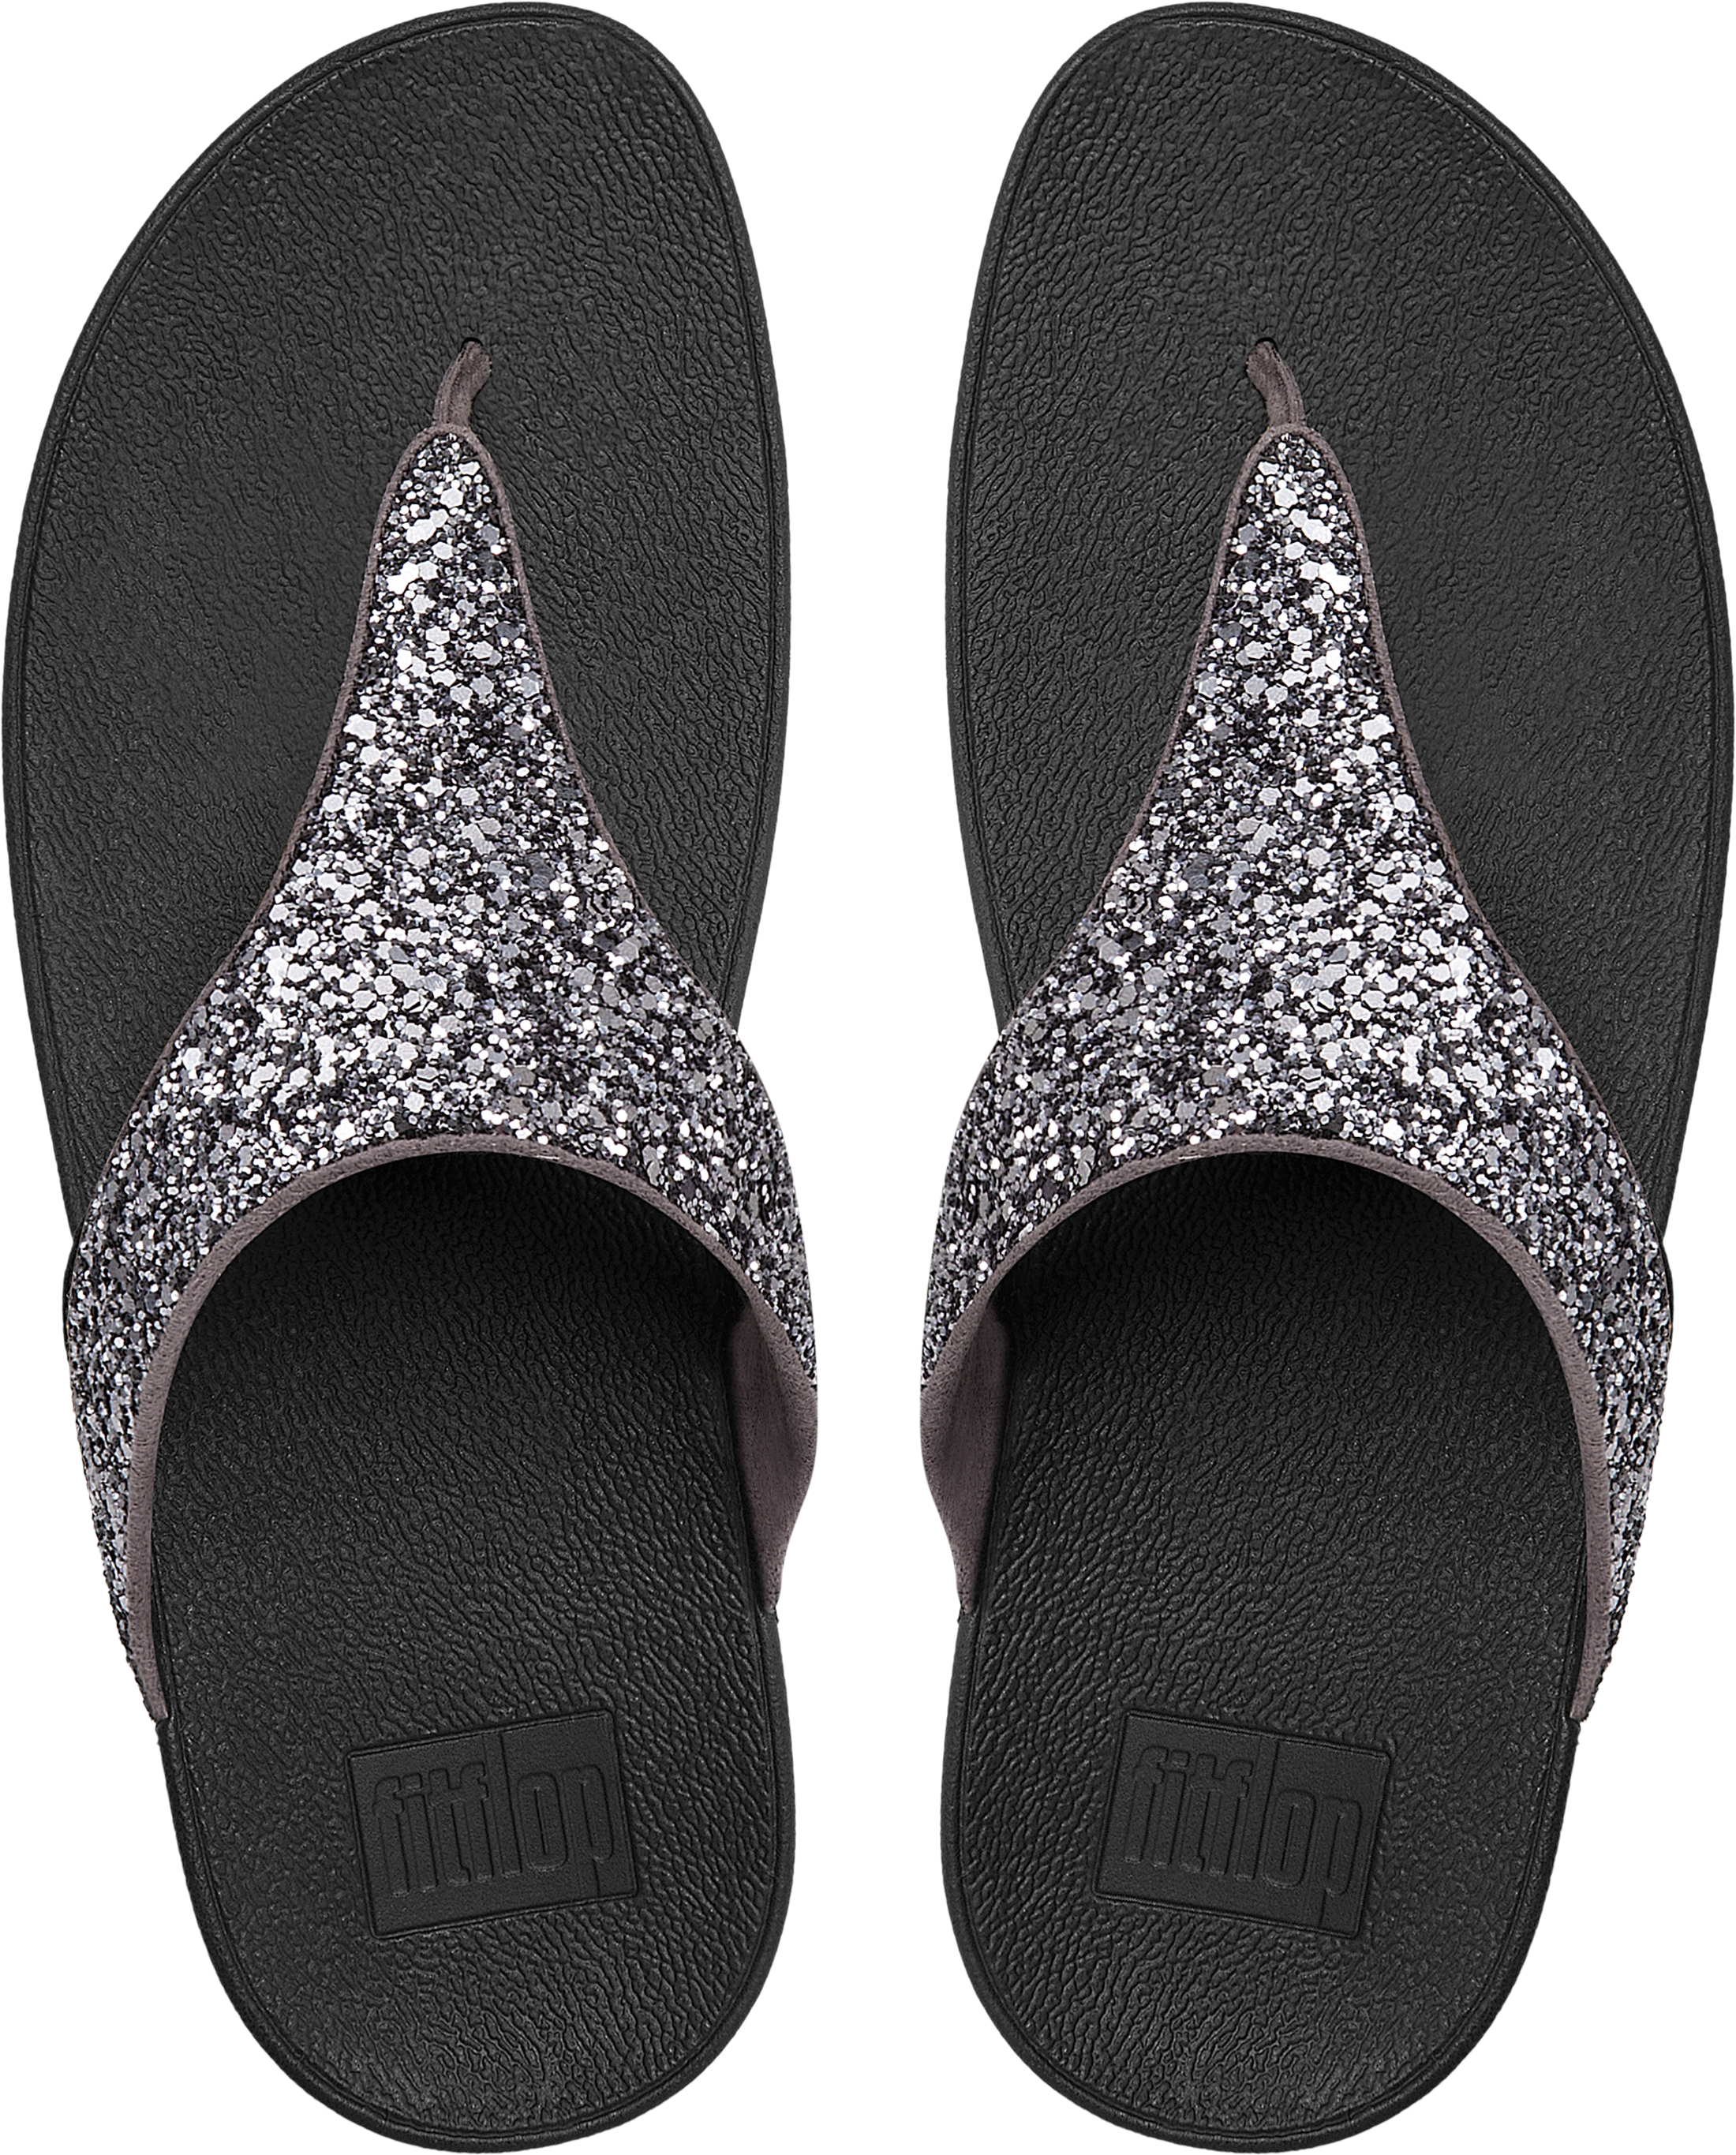 87c24d140c4 FitFlop Womens Glitterball Toe-post Sandals - Pewter Uk4 Black for ...